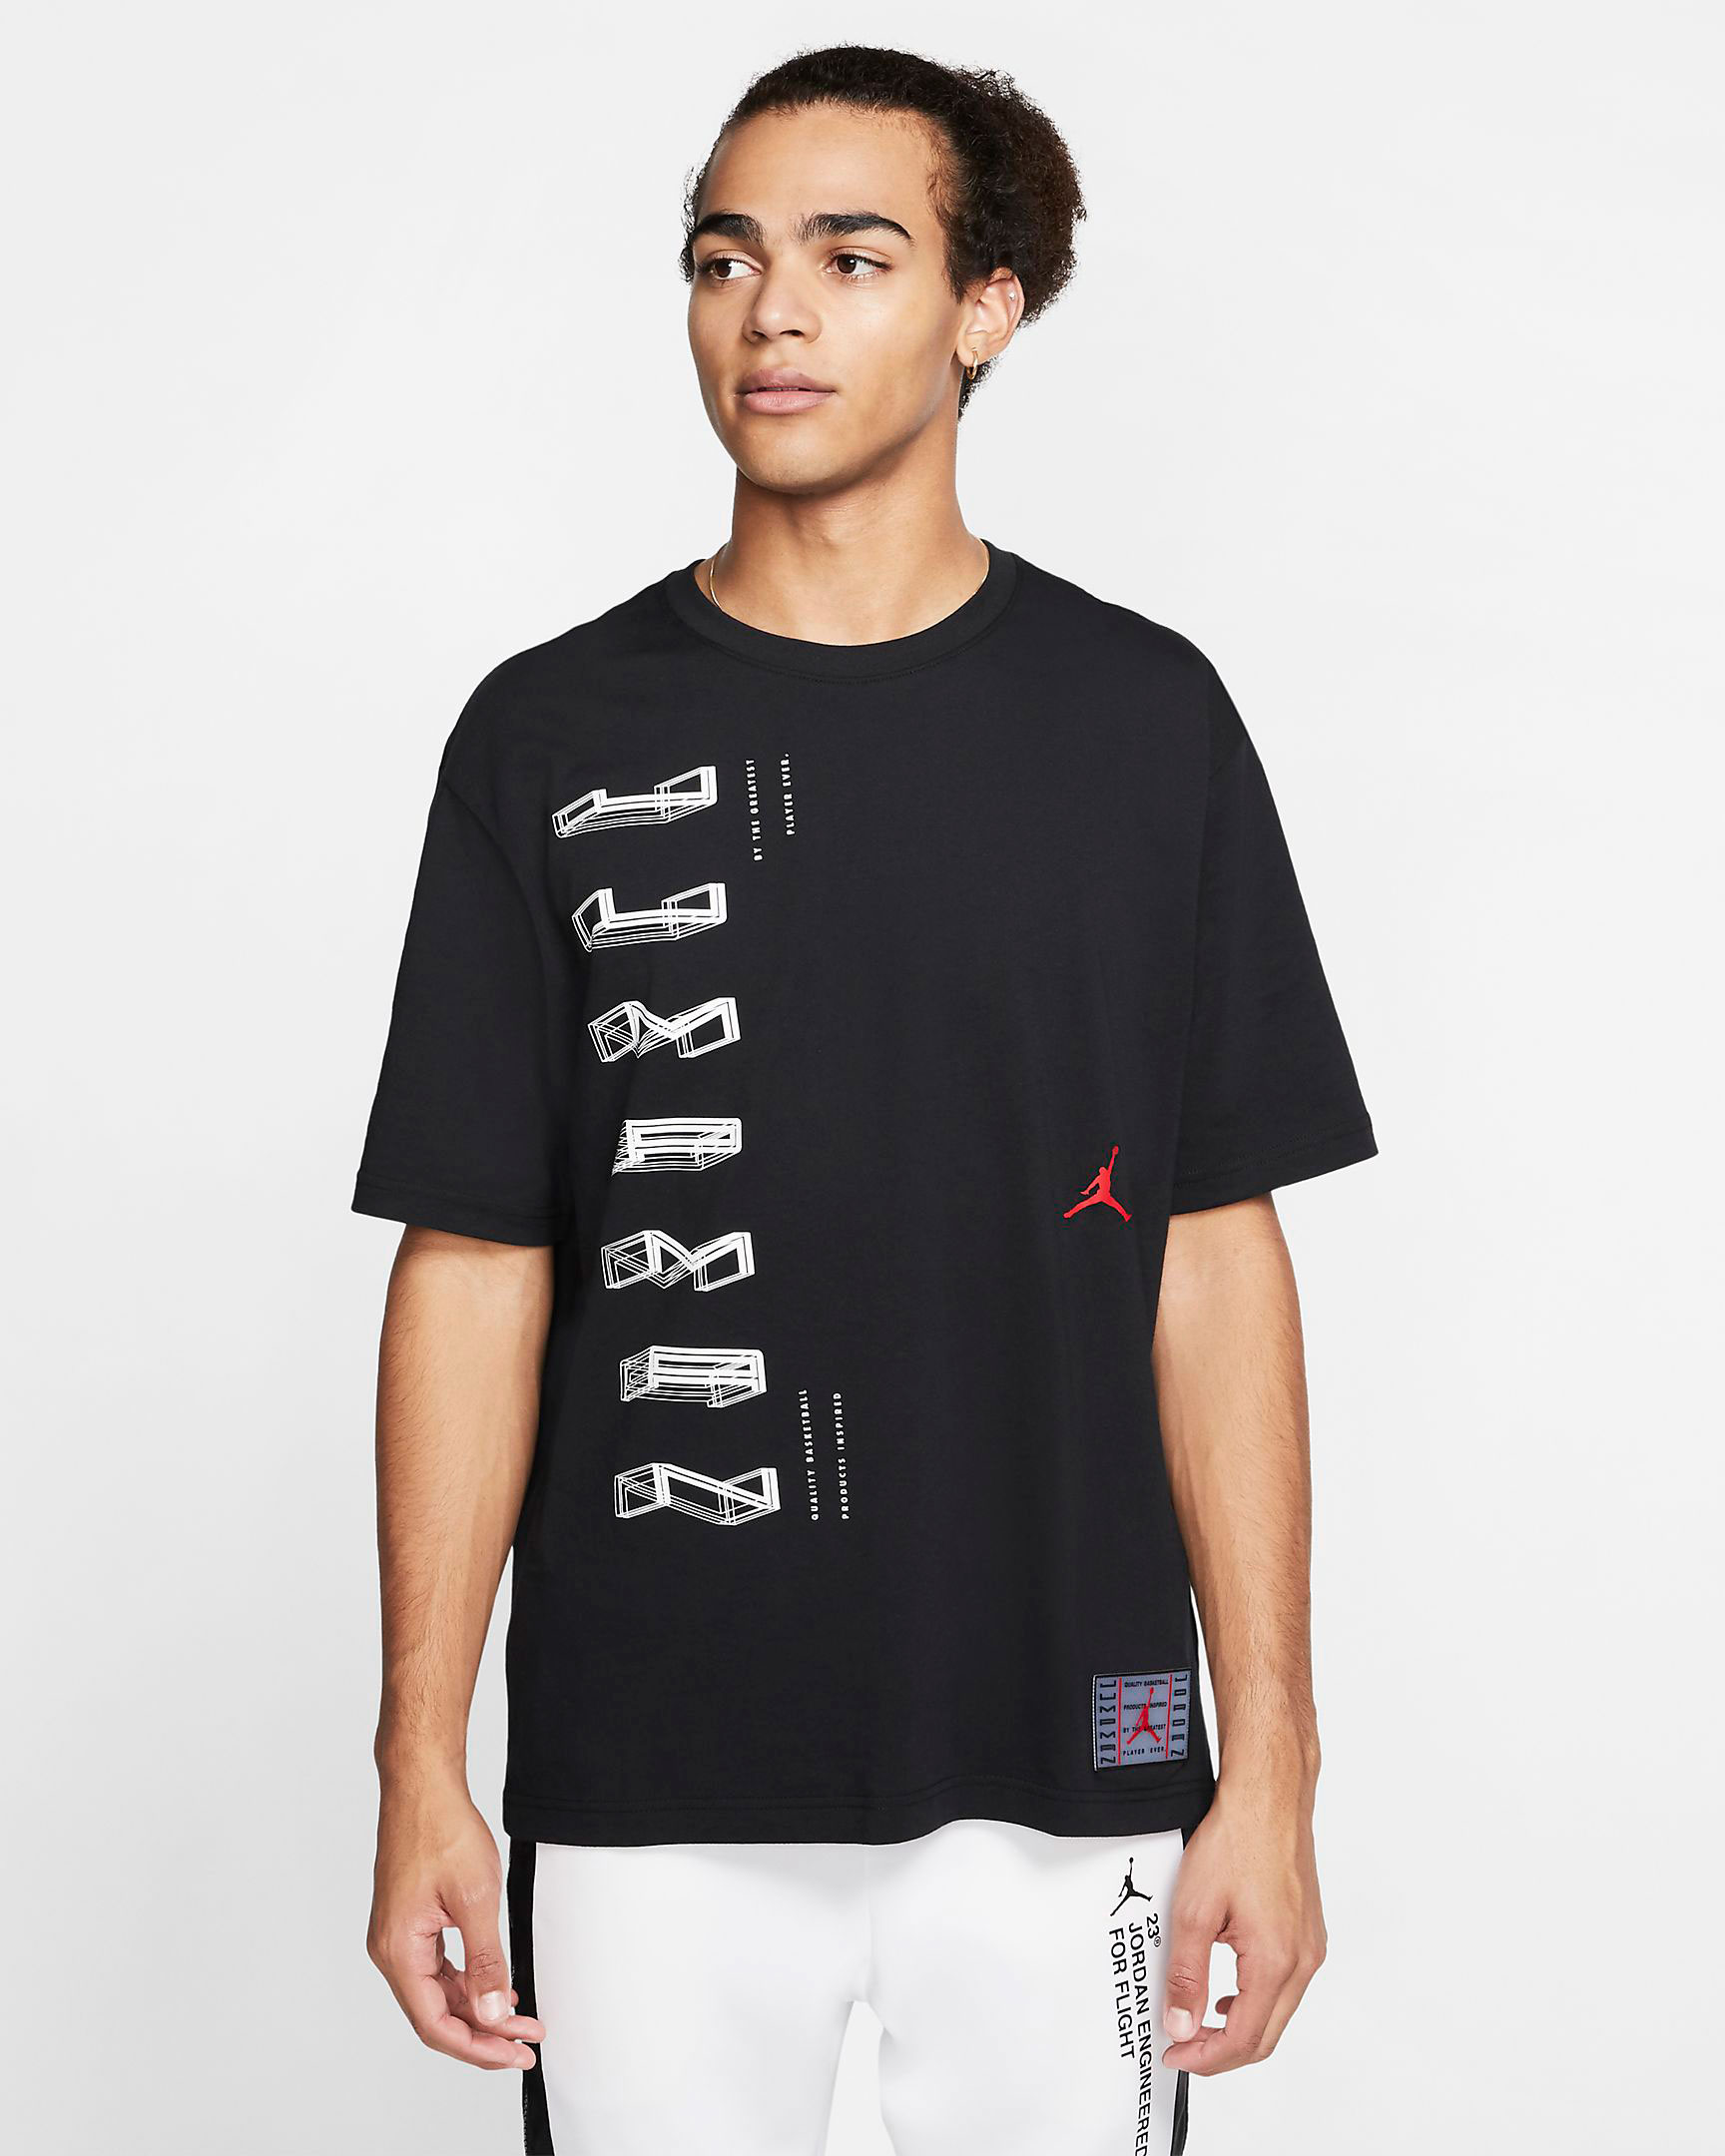 air-jordan-11-bred-2019-shirt-black-1